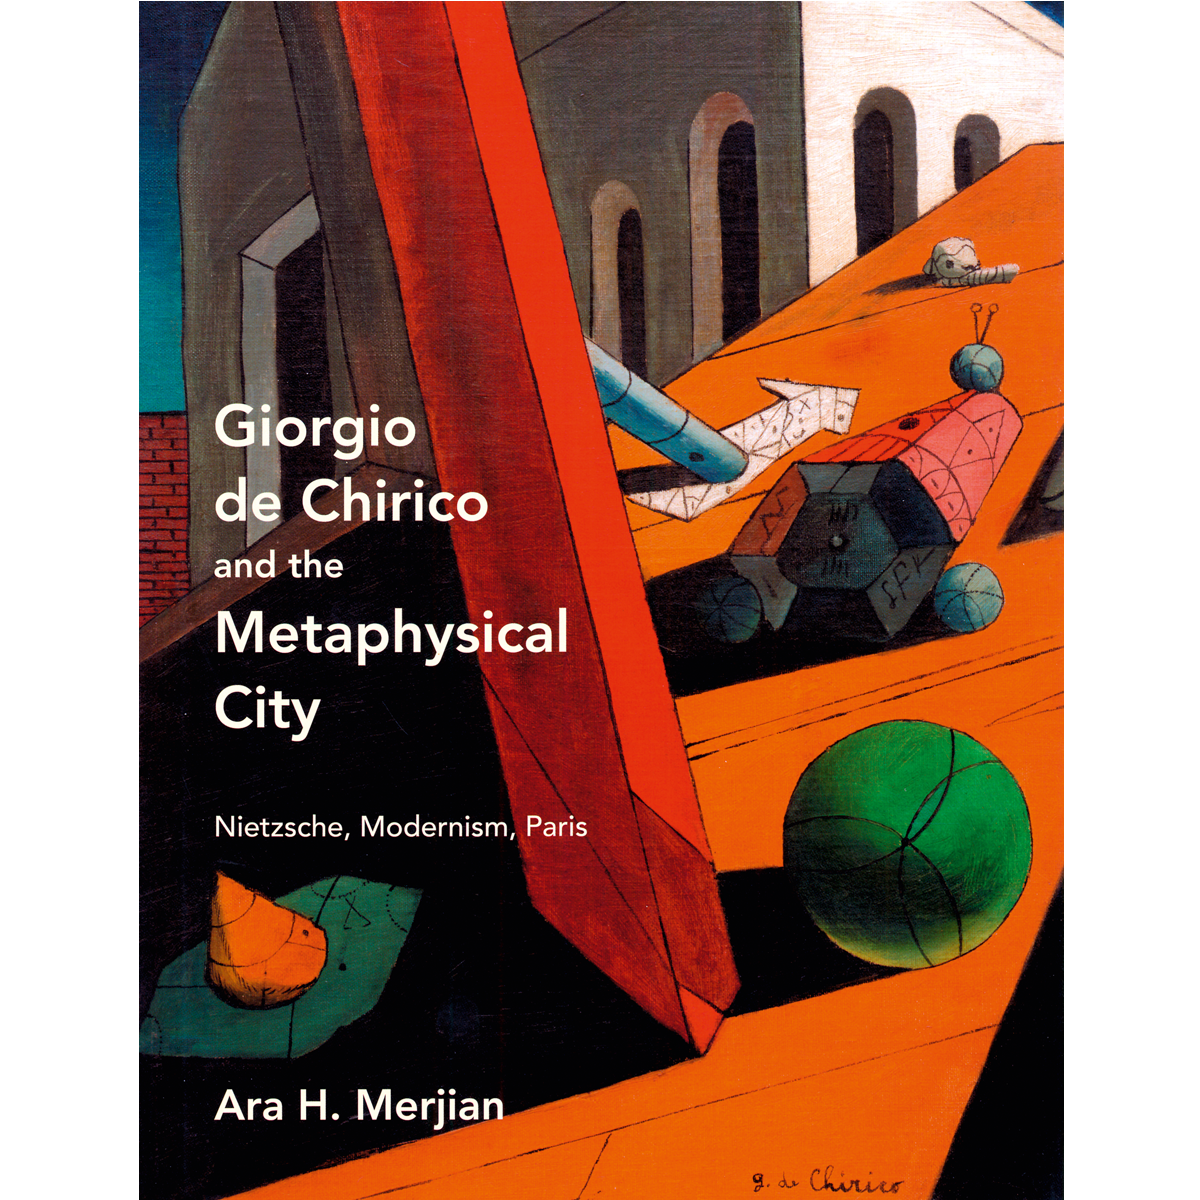 Giorgio de Chirico and the Metaphysical City